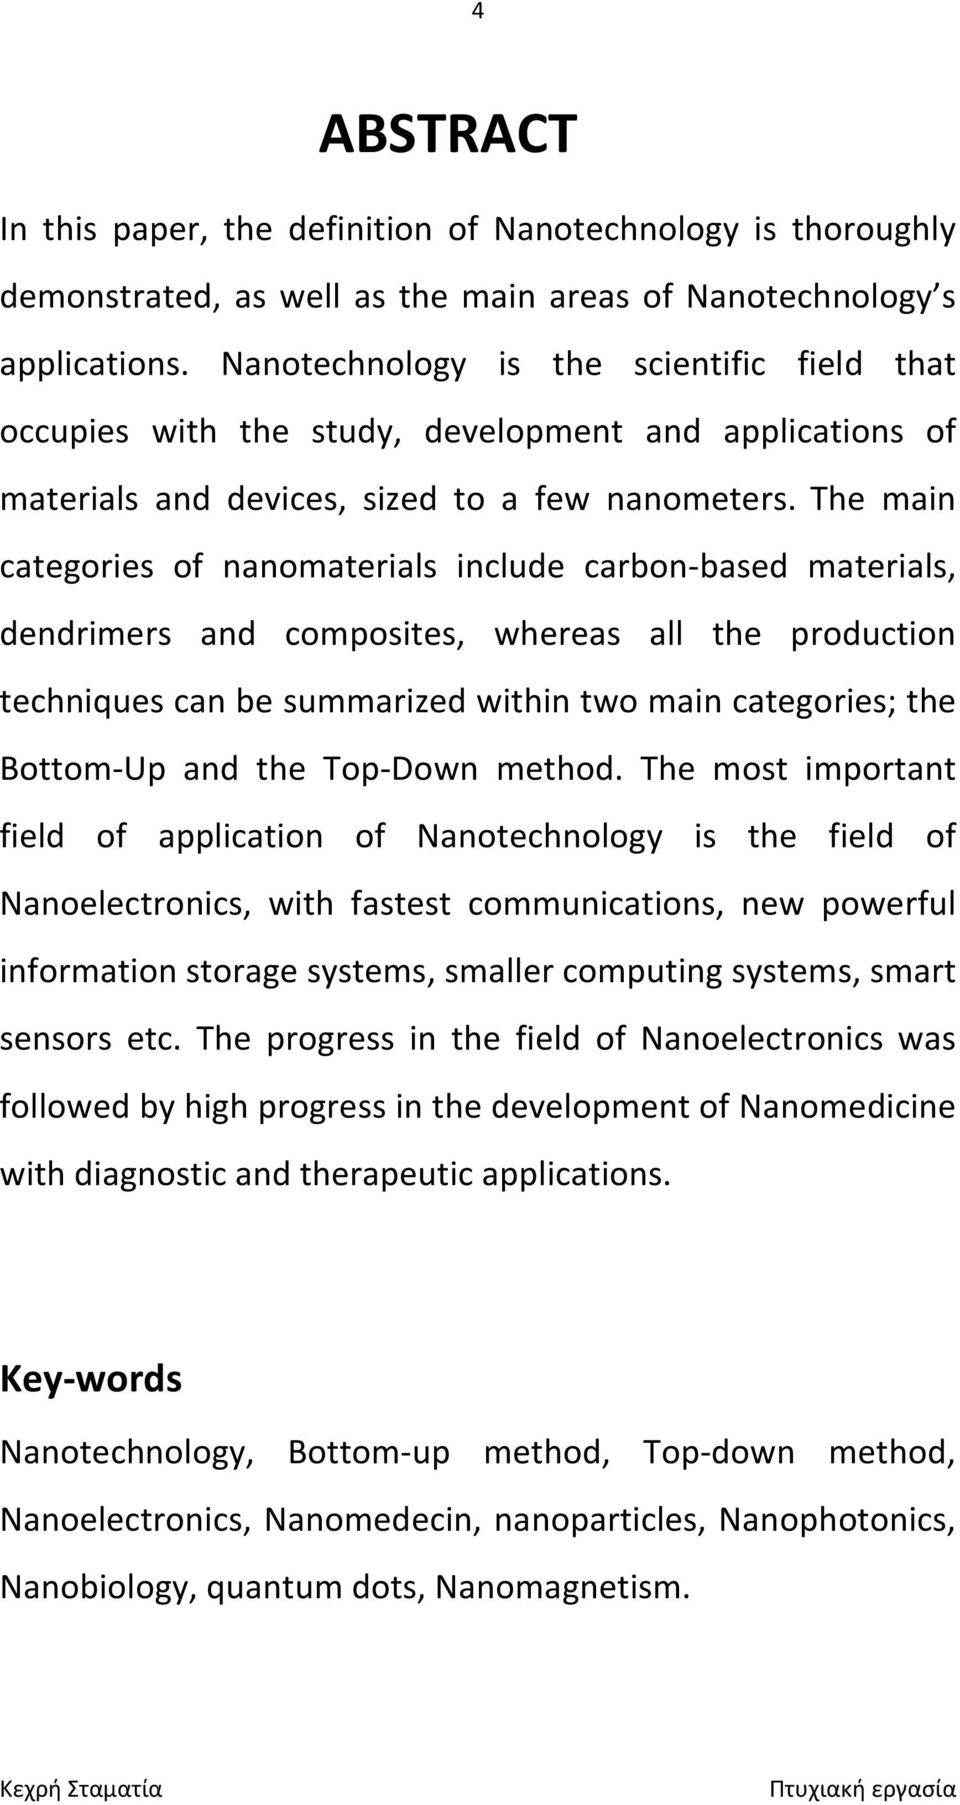 The main categories of nanomaterials include carbon-based materials, dendrimers and composites, whereas all the production techniques can be summarized within two main categories; the Bottom-Up and